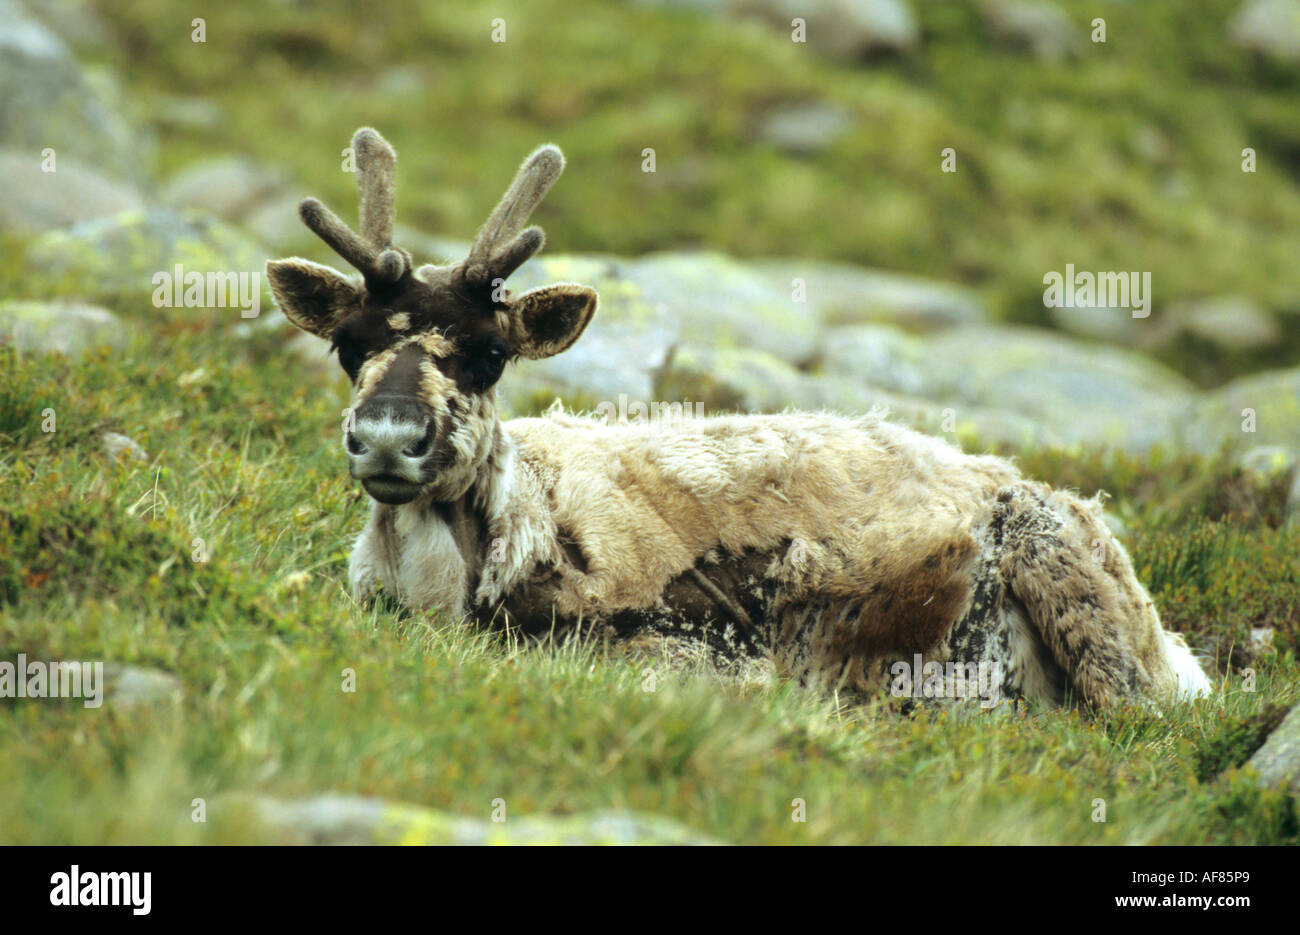 Reindeer Rangifer terandus lying on a hillside and looking directly at the camera lens Stock Photo